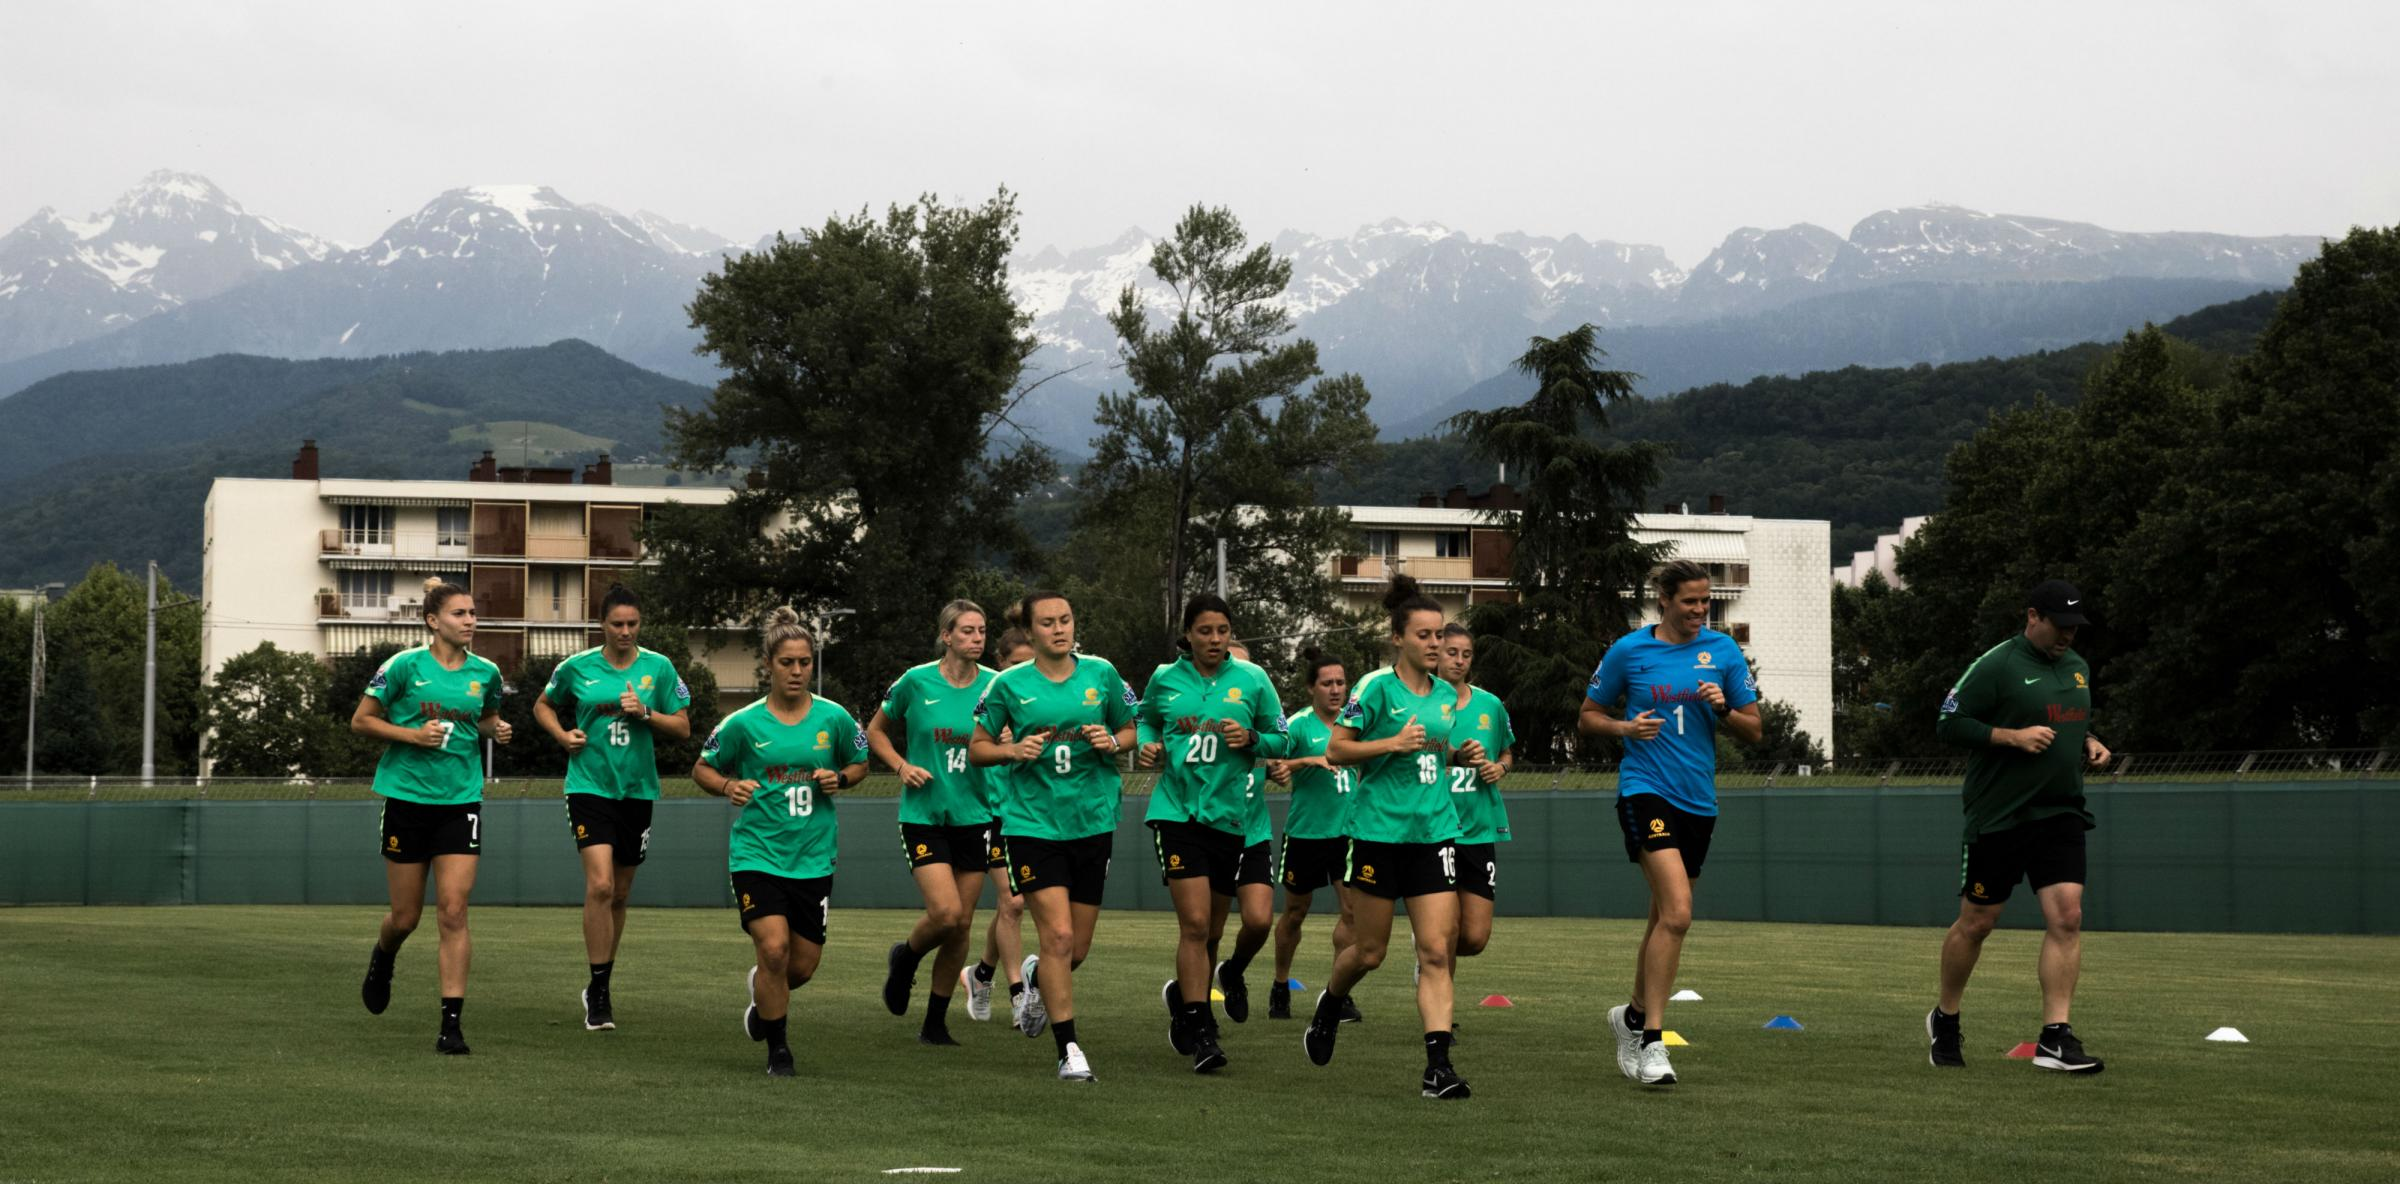 Matildas Grenoble training